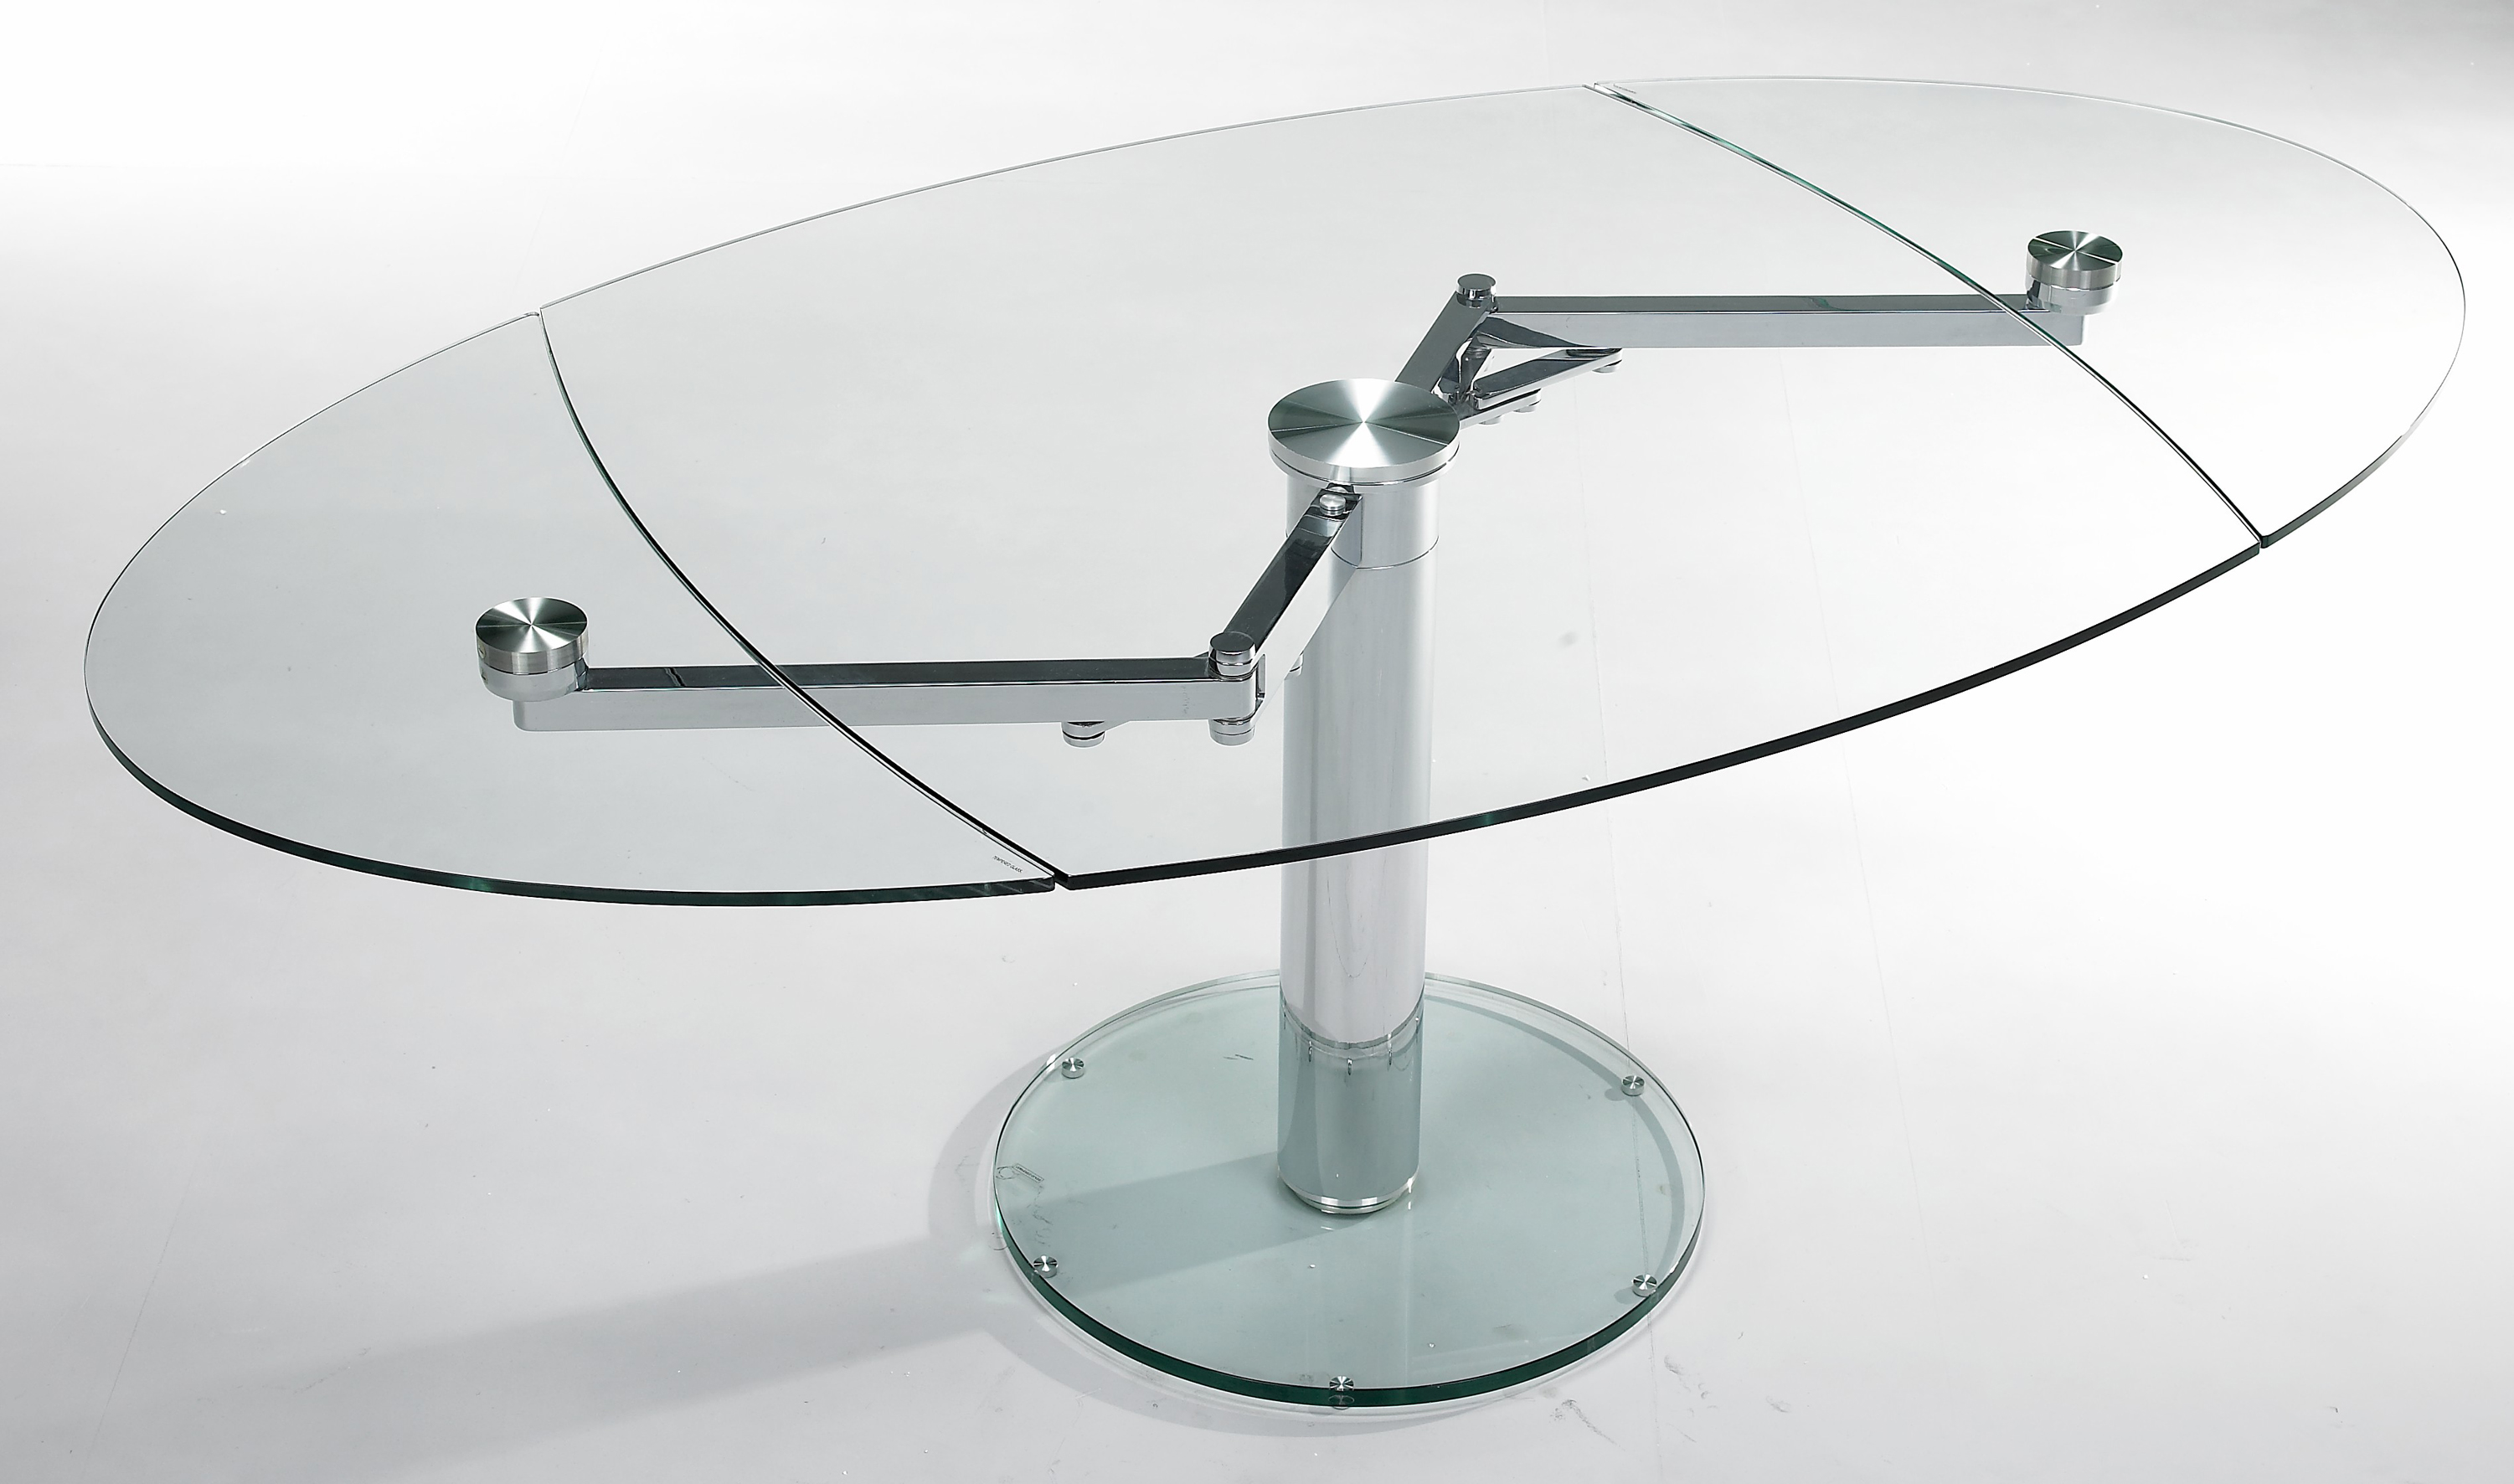 Extand 9042 eda concept collection de meubles design for Table de salle a manger en verre avec rallonge